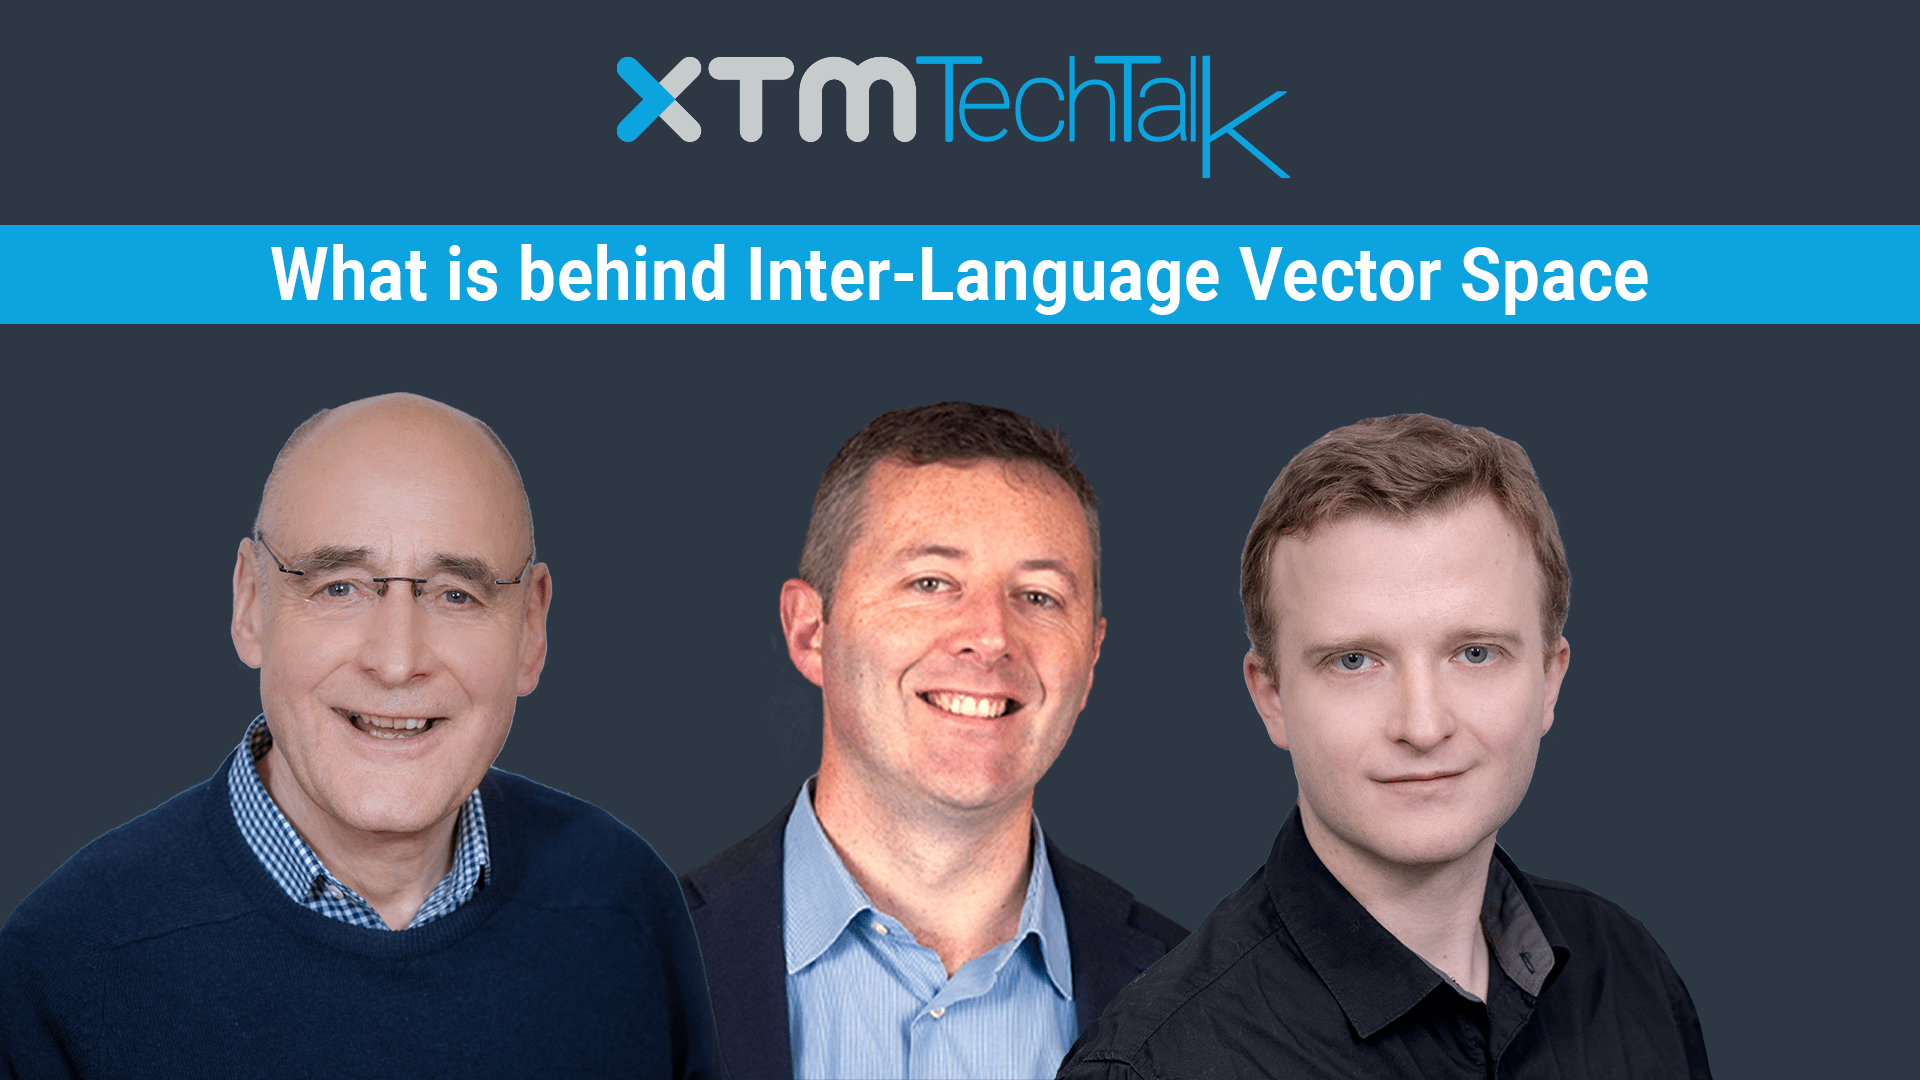 What is behind Inter-Language Vector Space